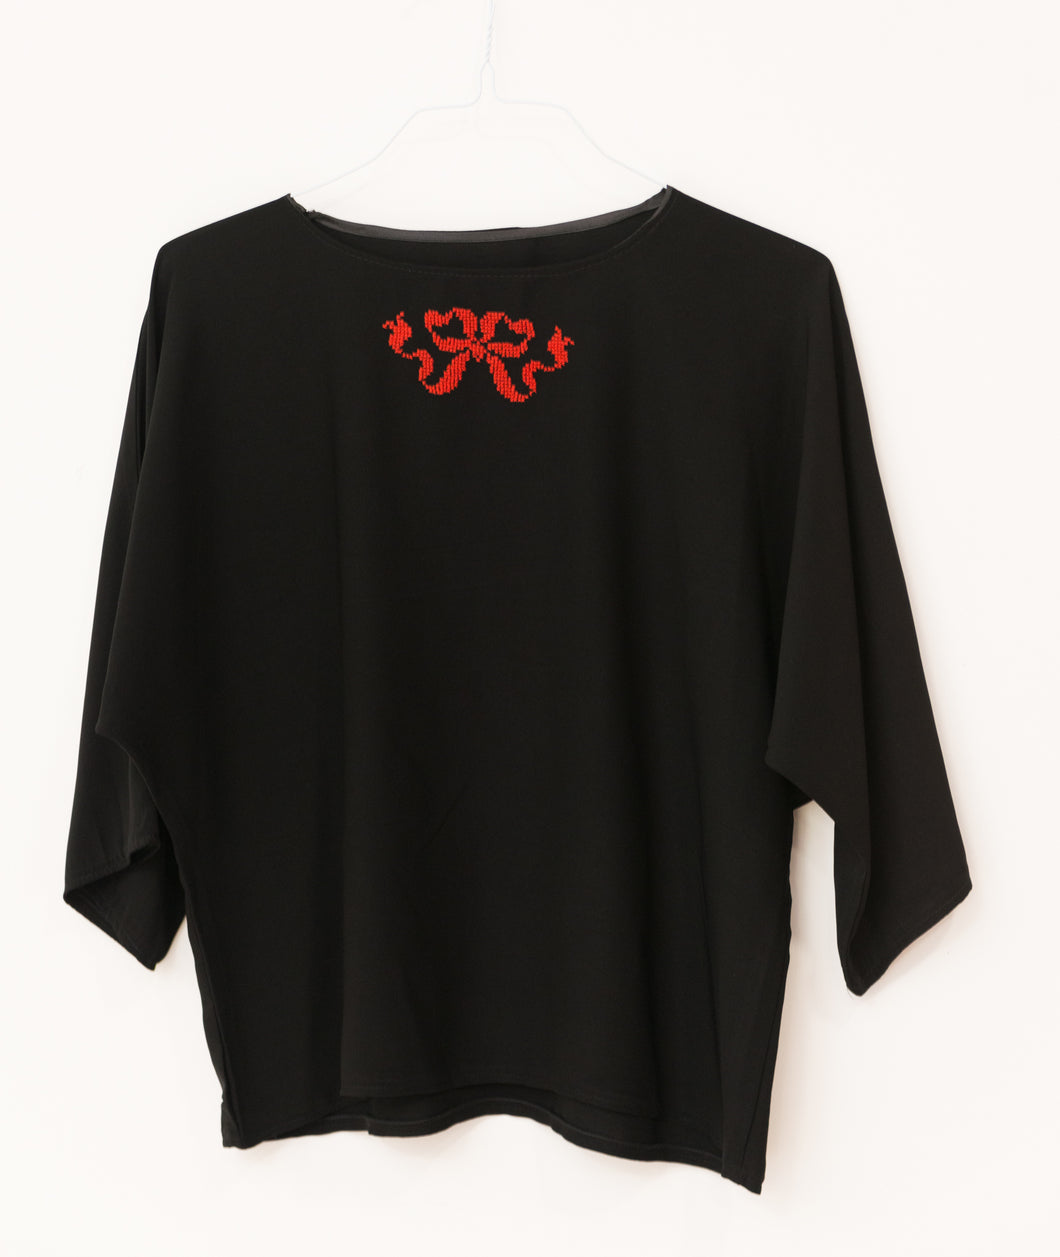 Black blouse with red embroidery - Falastini Brand